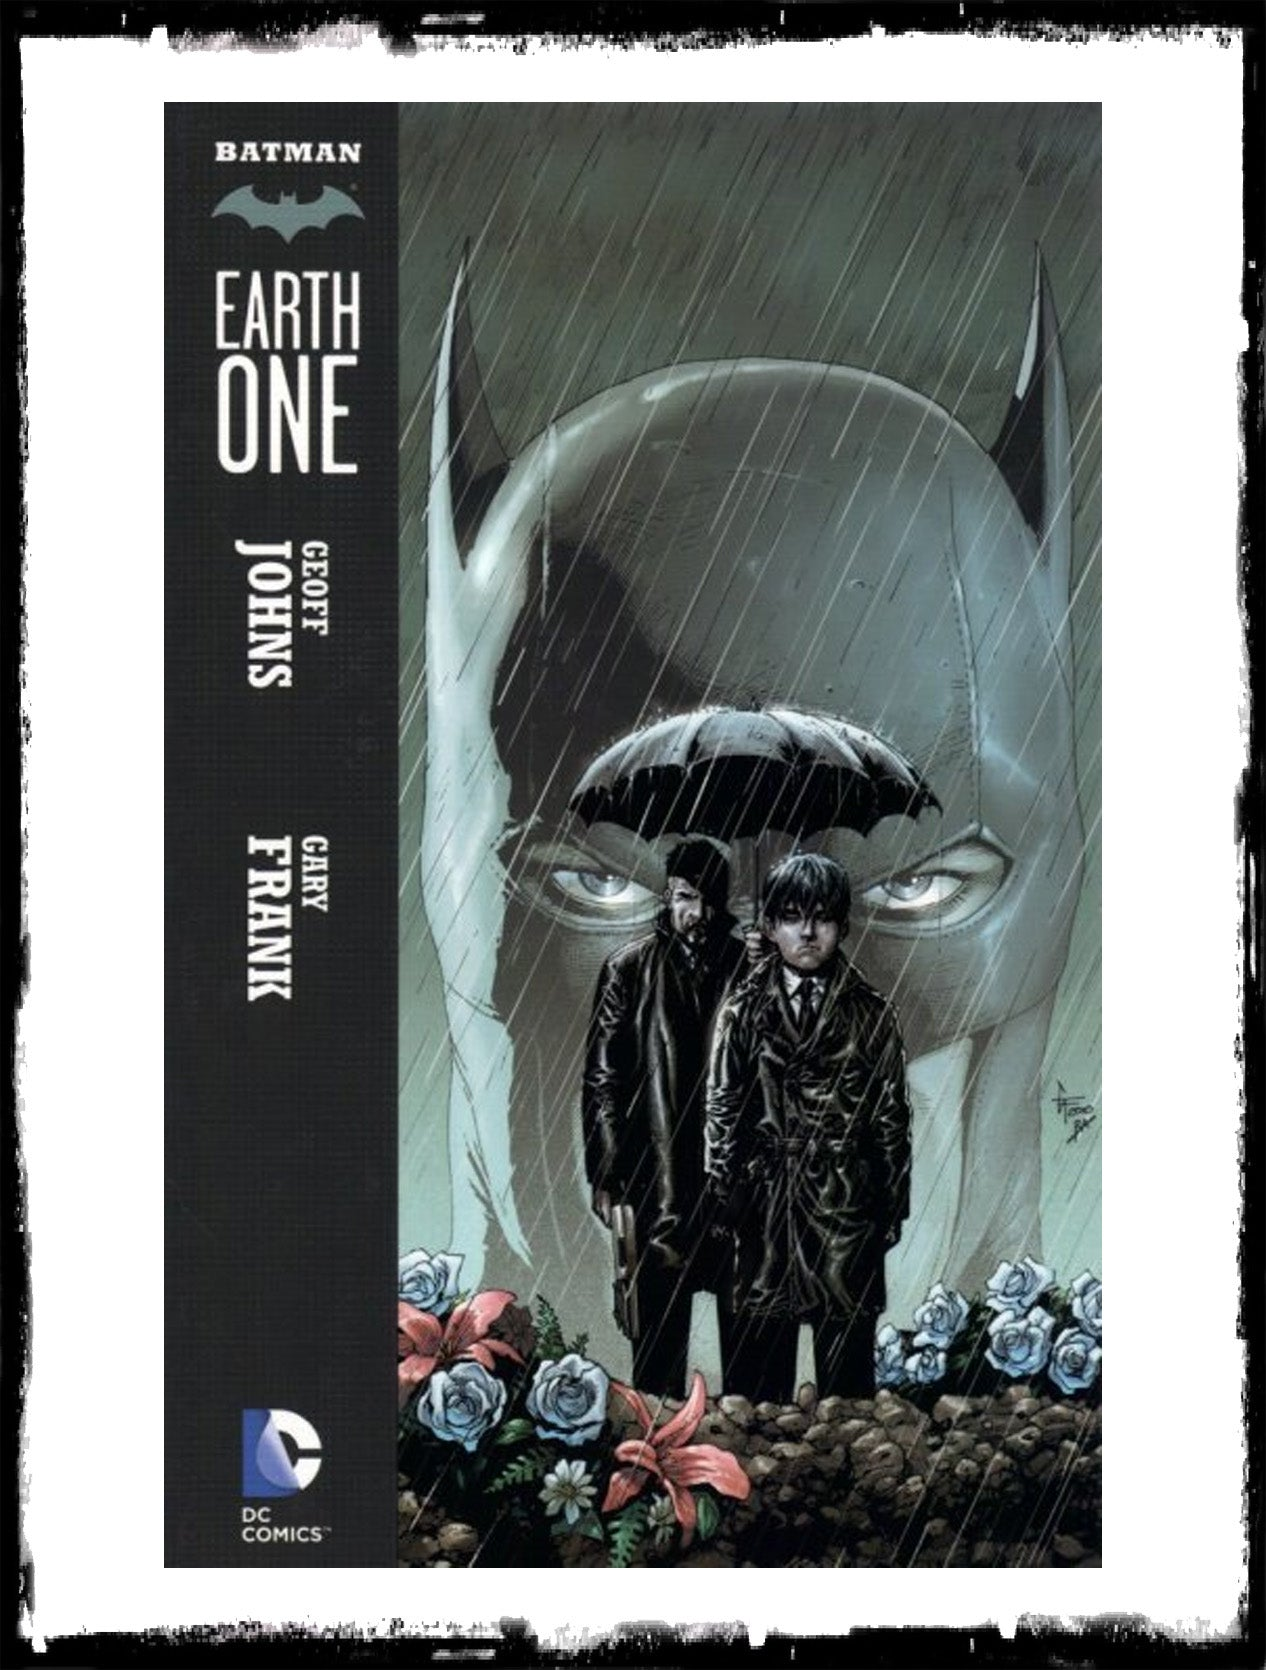 BATMAN: EARTH ONE - HARDCOVER (2012 - NM)